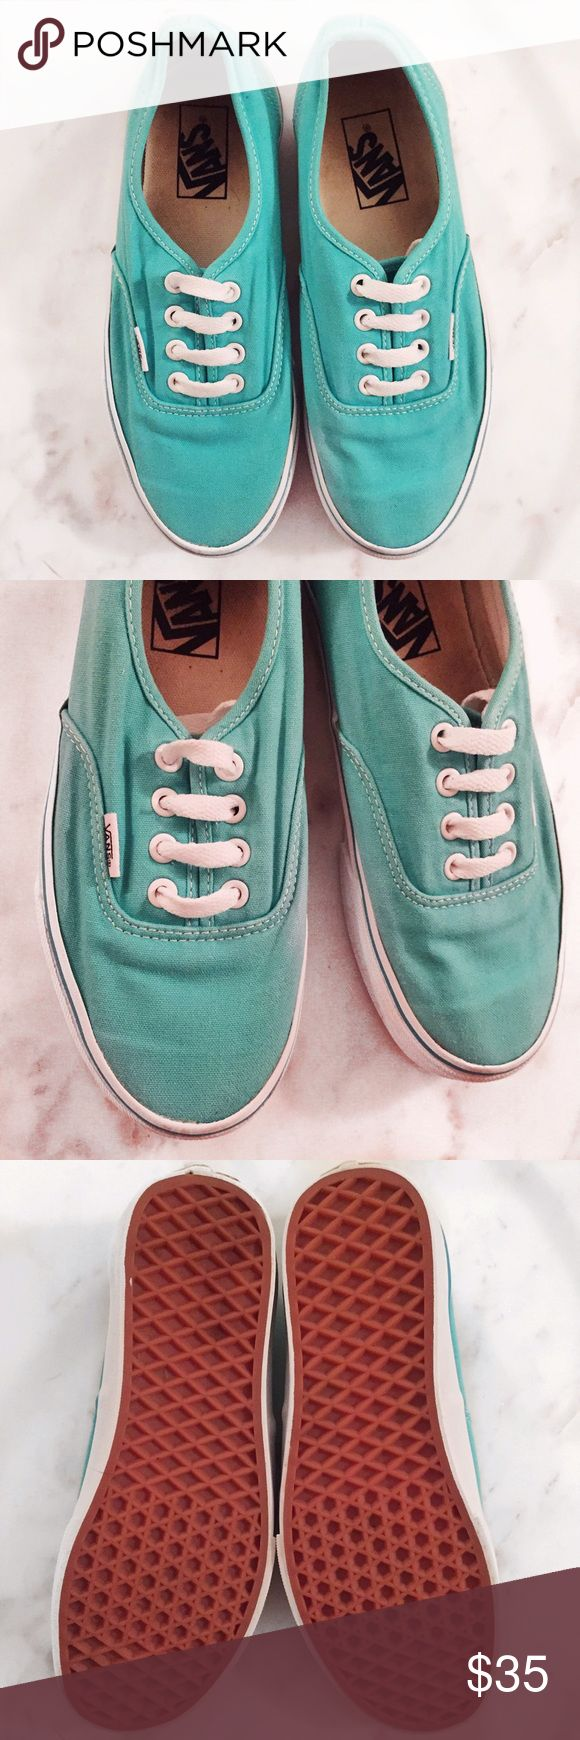 Turquoise Authentic Vans Gently used but in amazing condition! Size 6. Bundle for a discount. Vans Shoes Sneakers